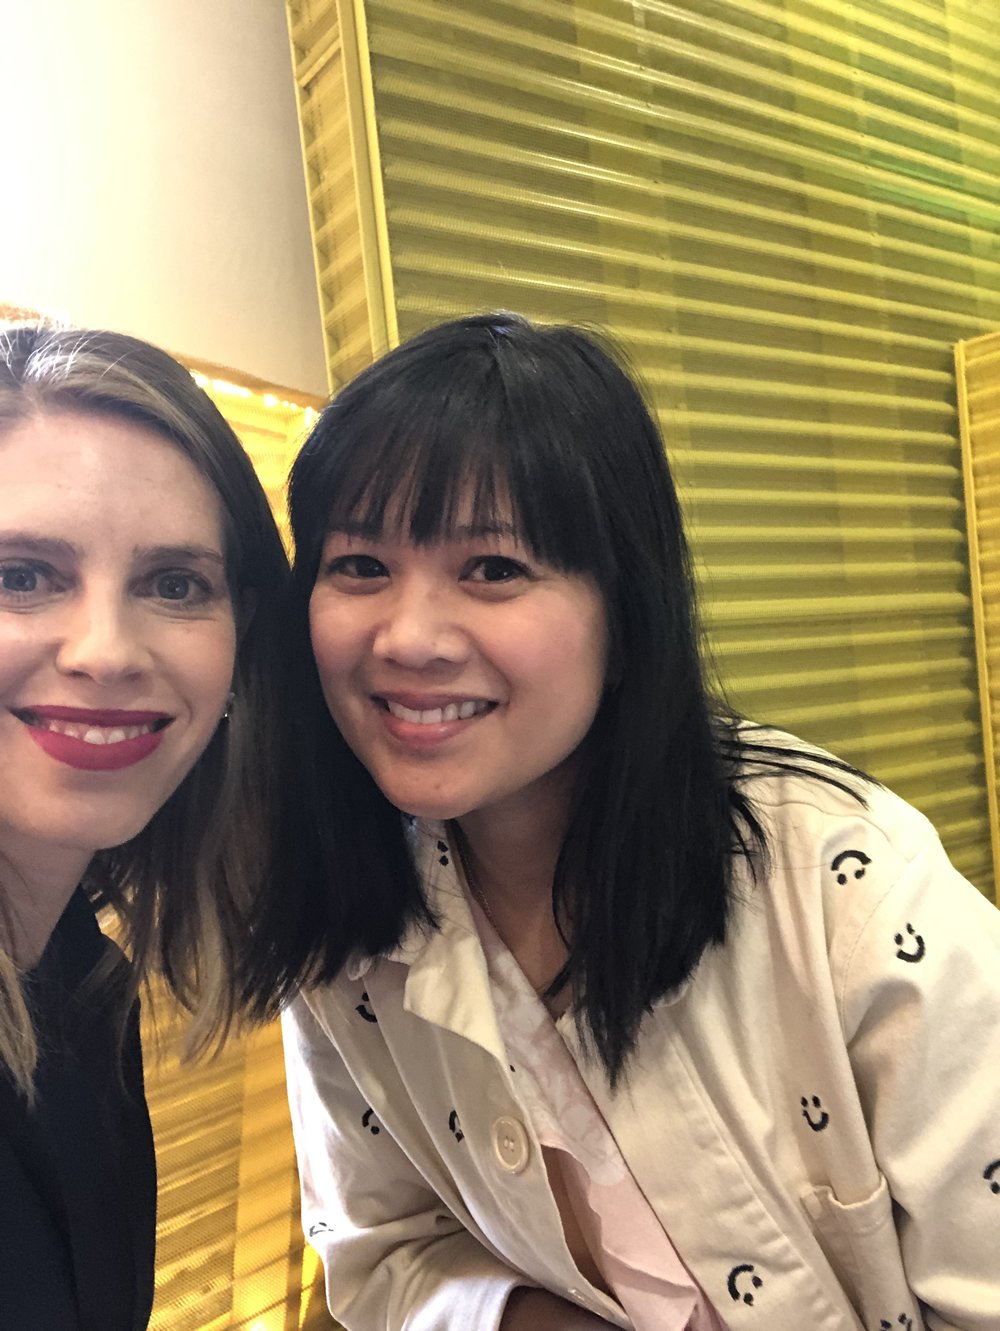 I loved chatting with Joy (@ohjoy) she was so kind and gave the best business tips!